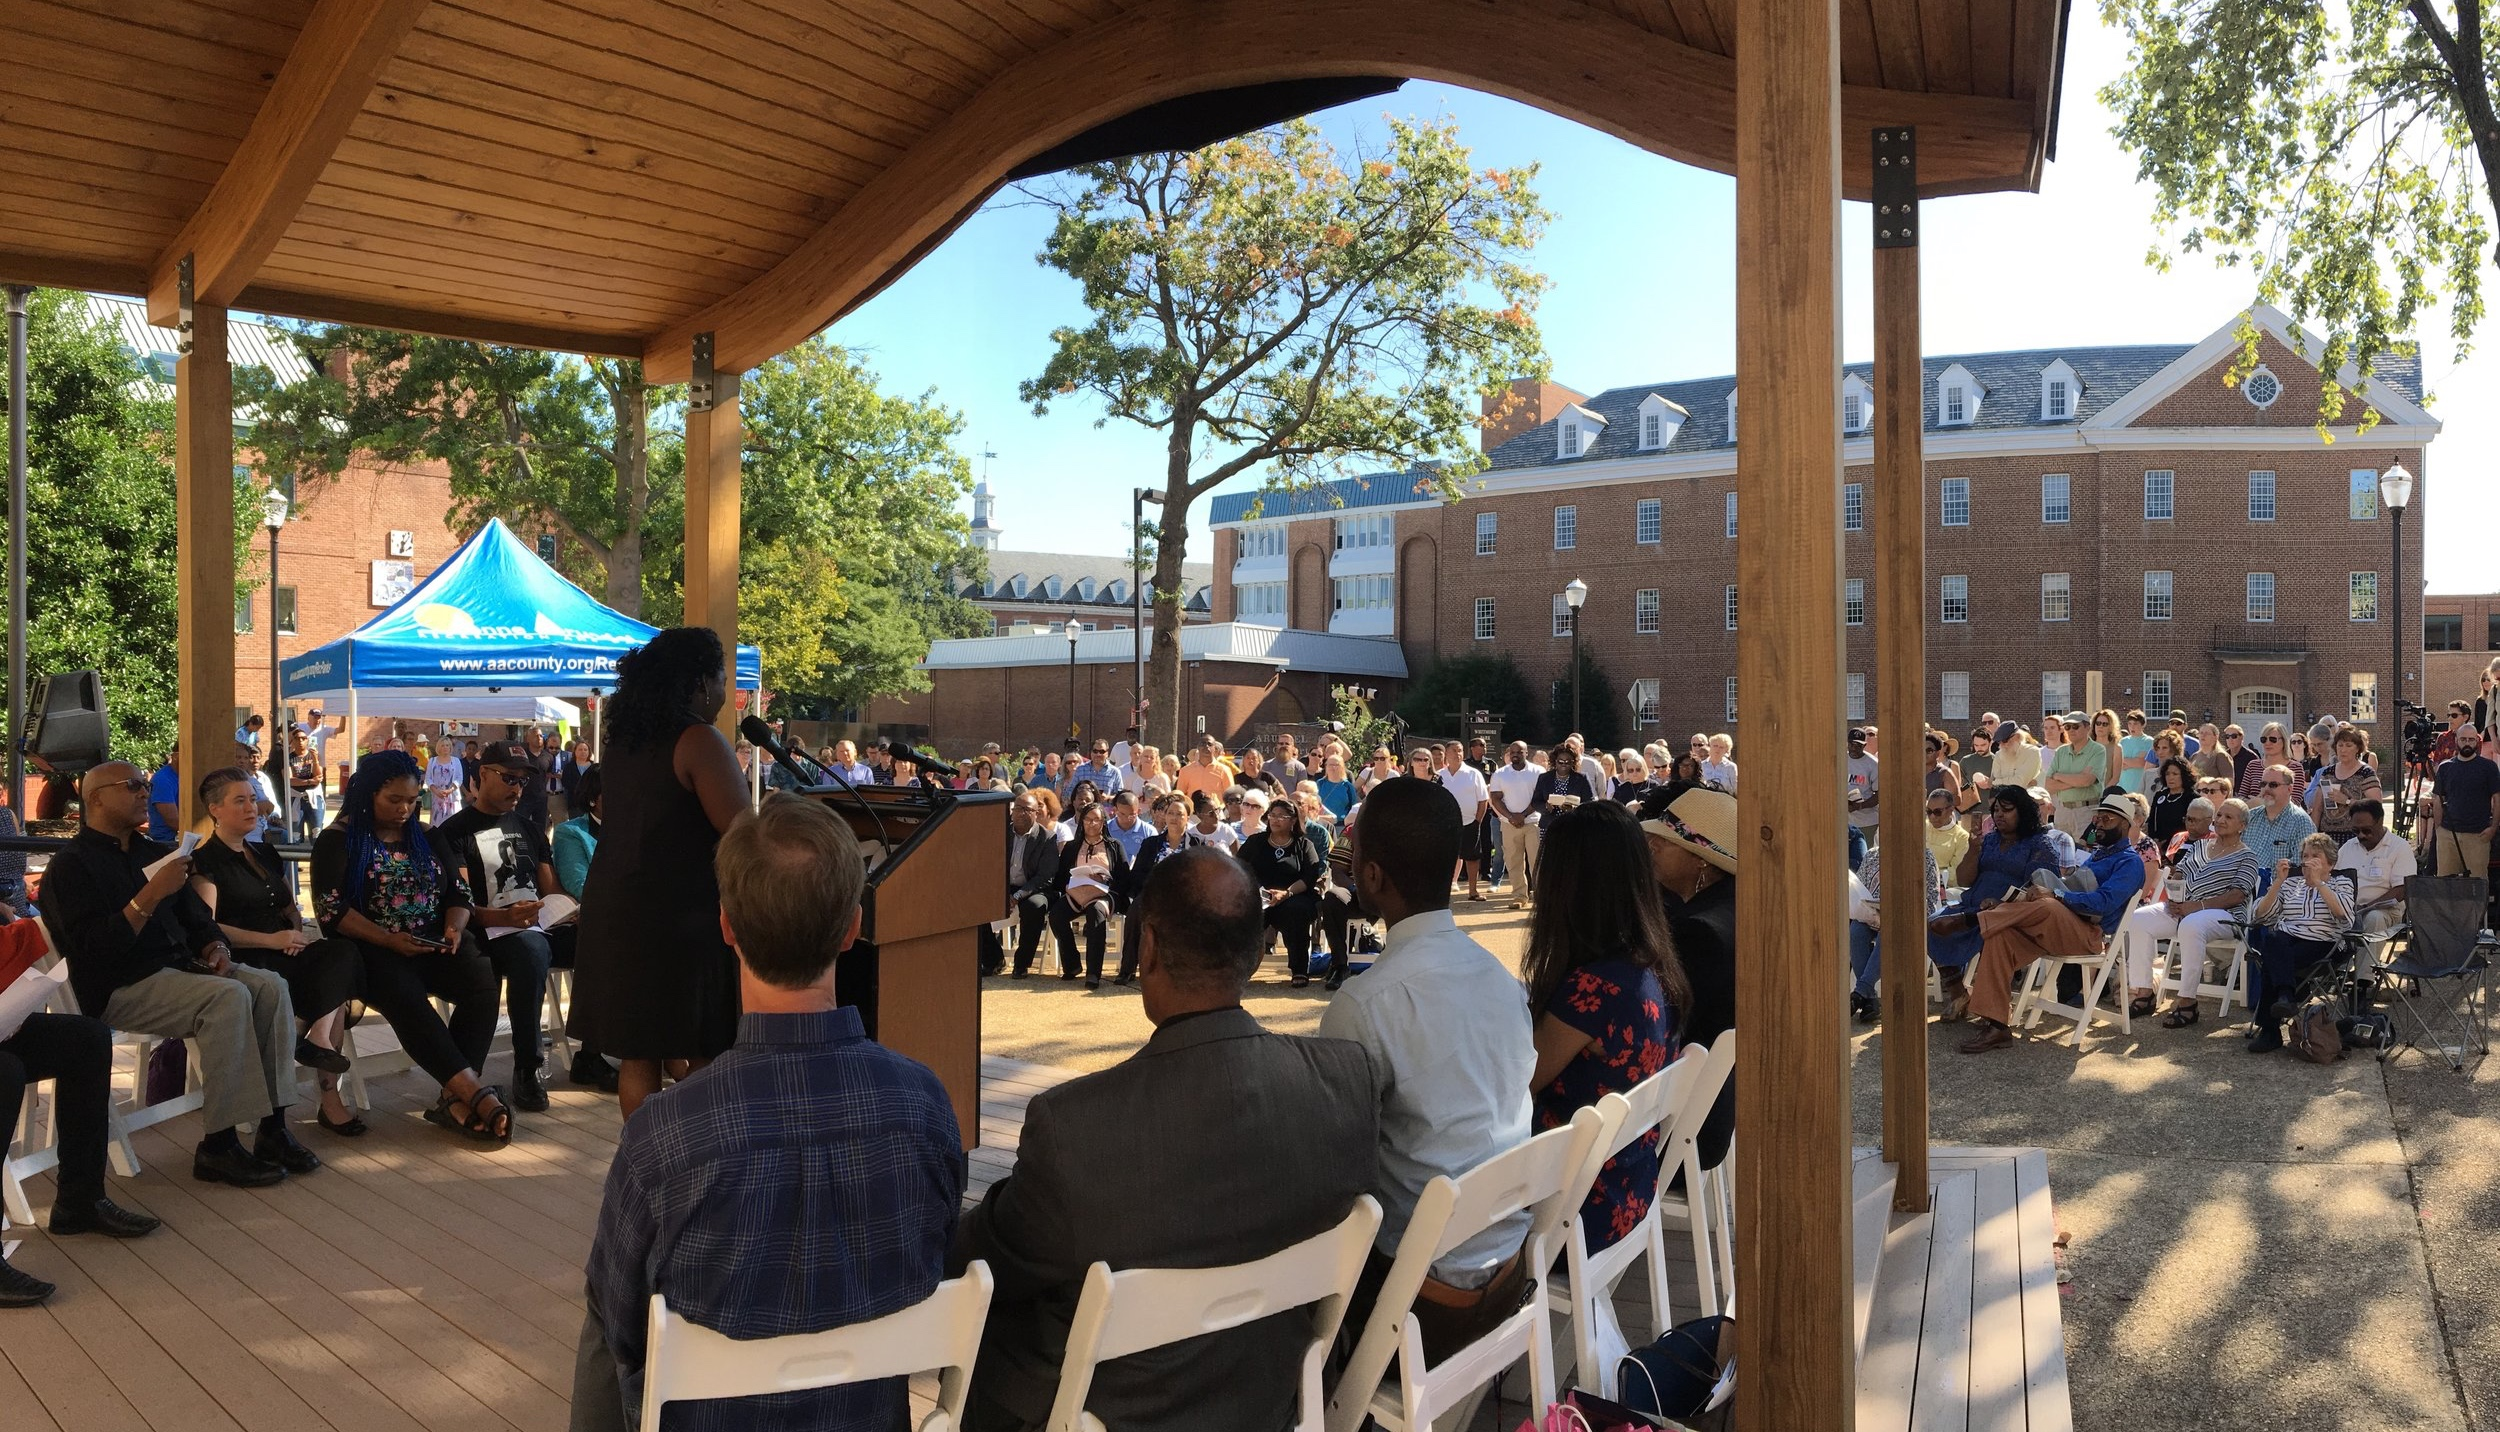 on September 7, 2019 Connecting the Dots: Anne arundel county co-chair monica lindsey addressed the crowd gathered for the dedication of eji historical marker commemorating five known terror lynchings in the county.